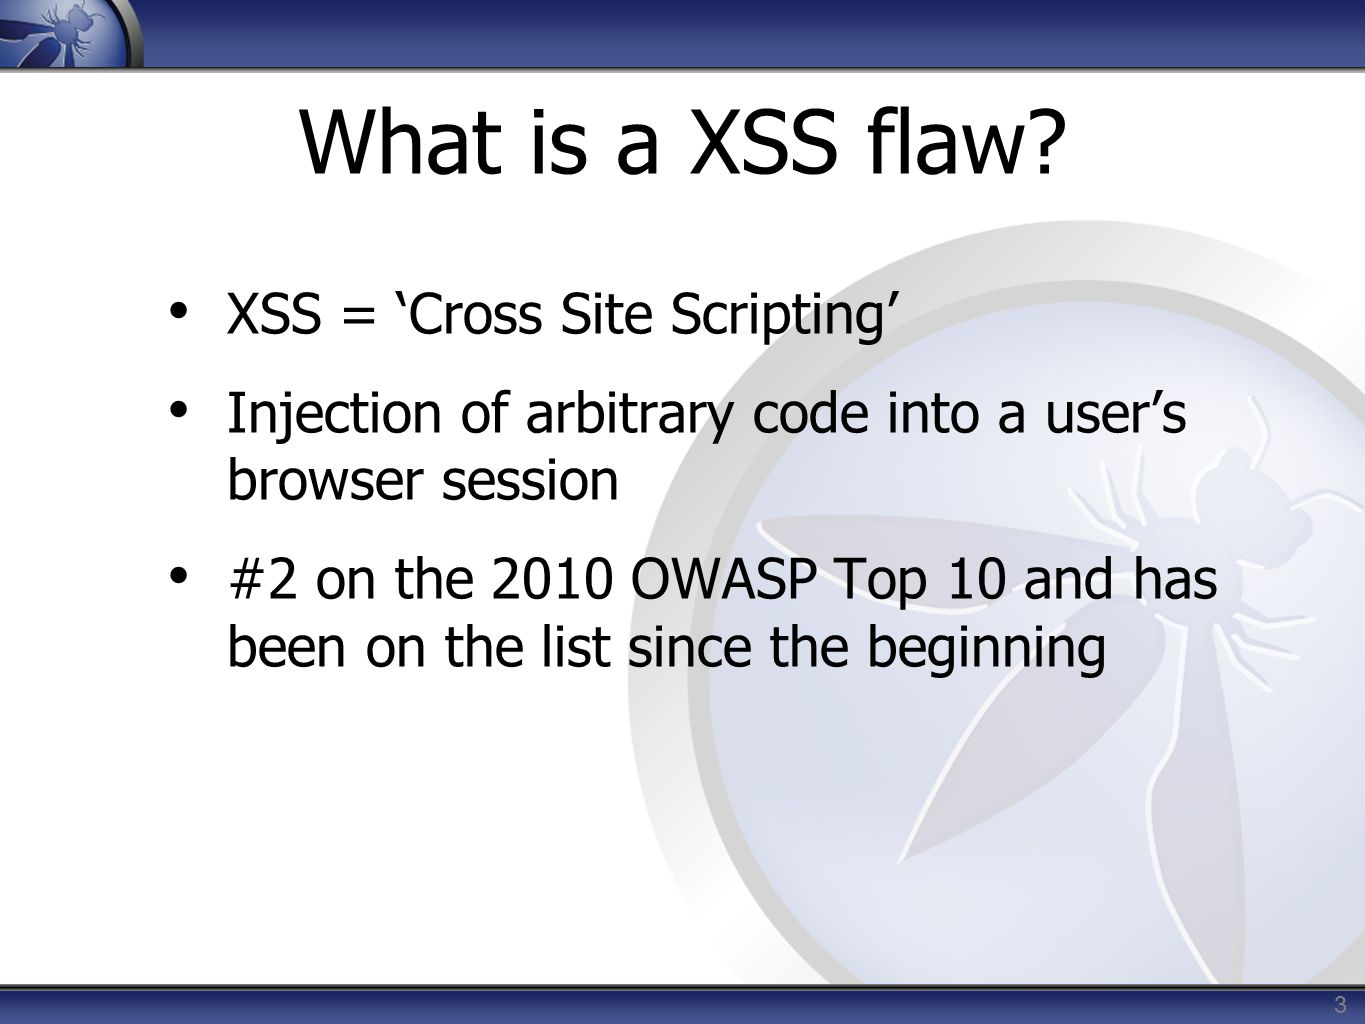 Anti-XSS Frameworks.NET – MS AntiXSS Library http://msdn.microsoft.com/en-us/security/aa973814 http://msdn.microsoft.com/en-us/security/aa973814 JAVA,.NET – OWASP AntiSAMY https://www.owasp.org/index.php/Category:OWASP_AntiSa my_Project https://www.owasp.org/index.php/Category:OWASP_AntiSa my_Project Javascript – Google CAJA http://code.google.com/p/google-caja/ http://code.google.com/p/google-caja/ 14